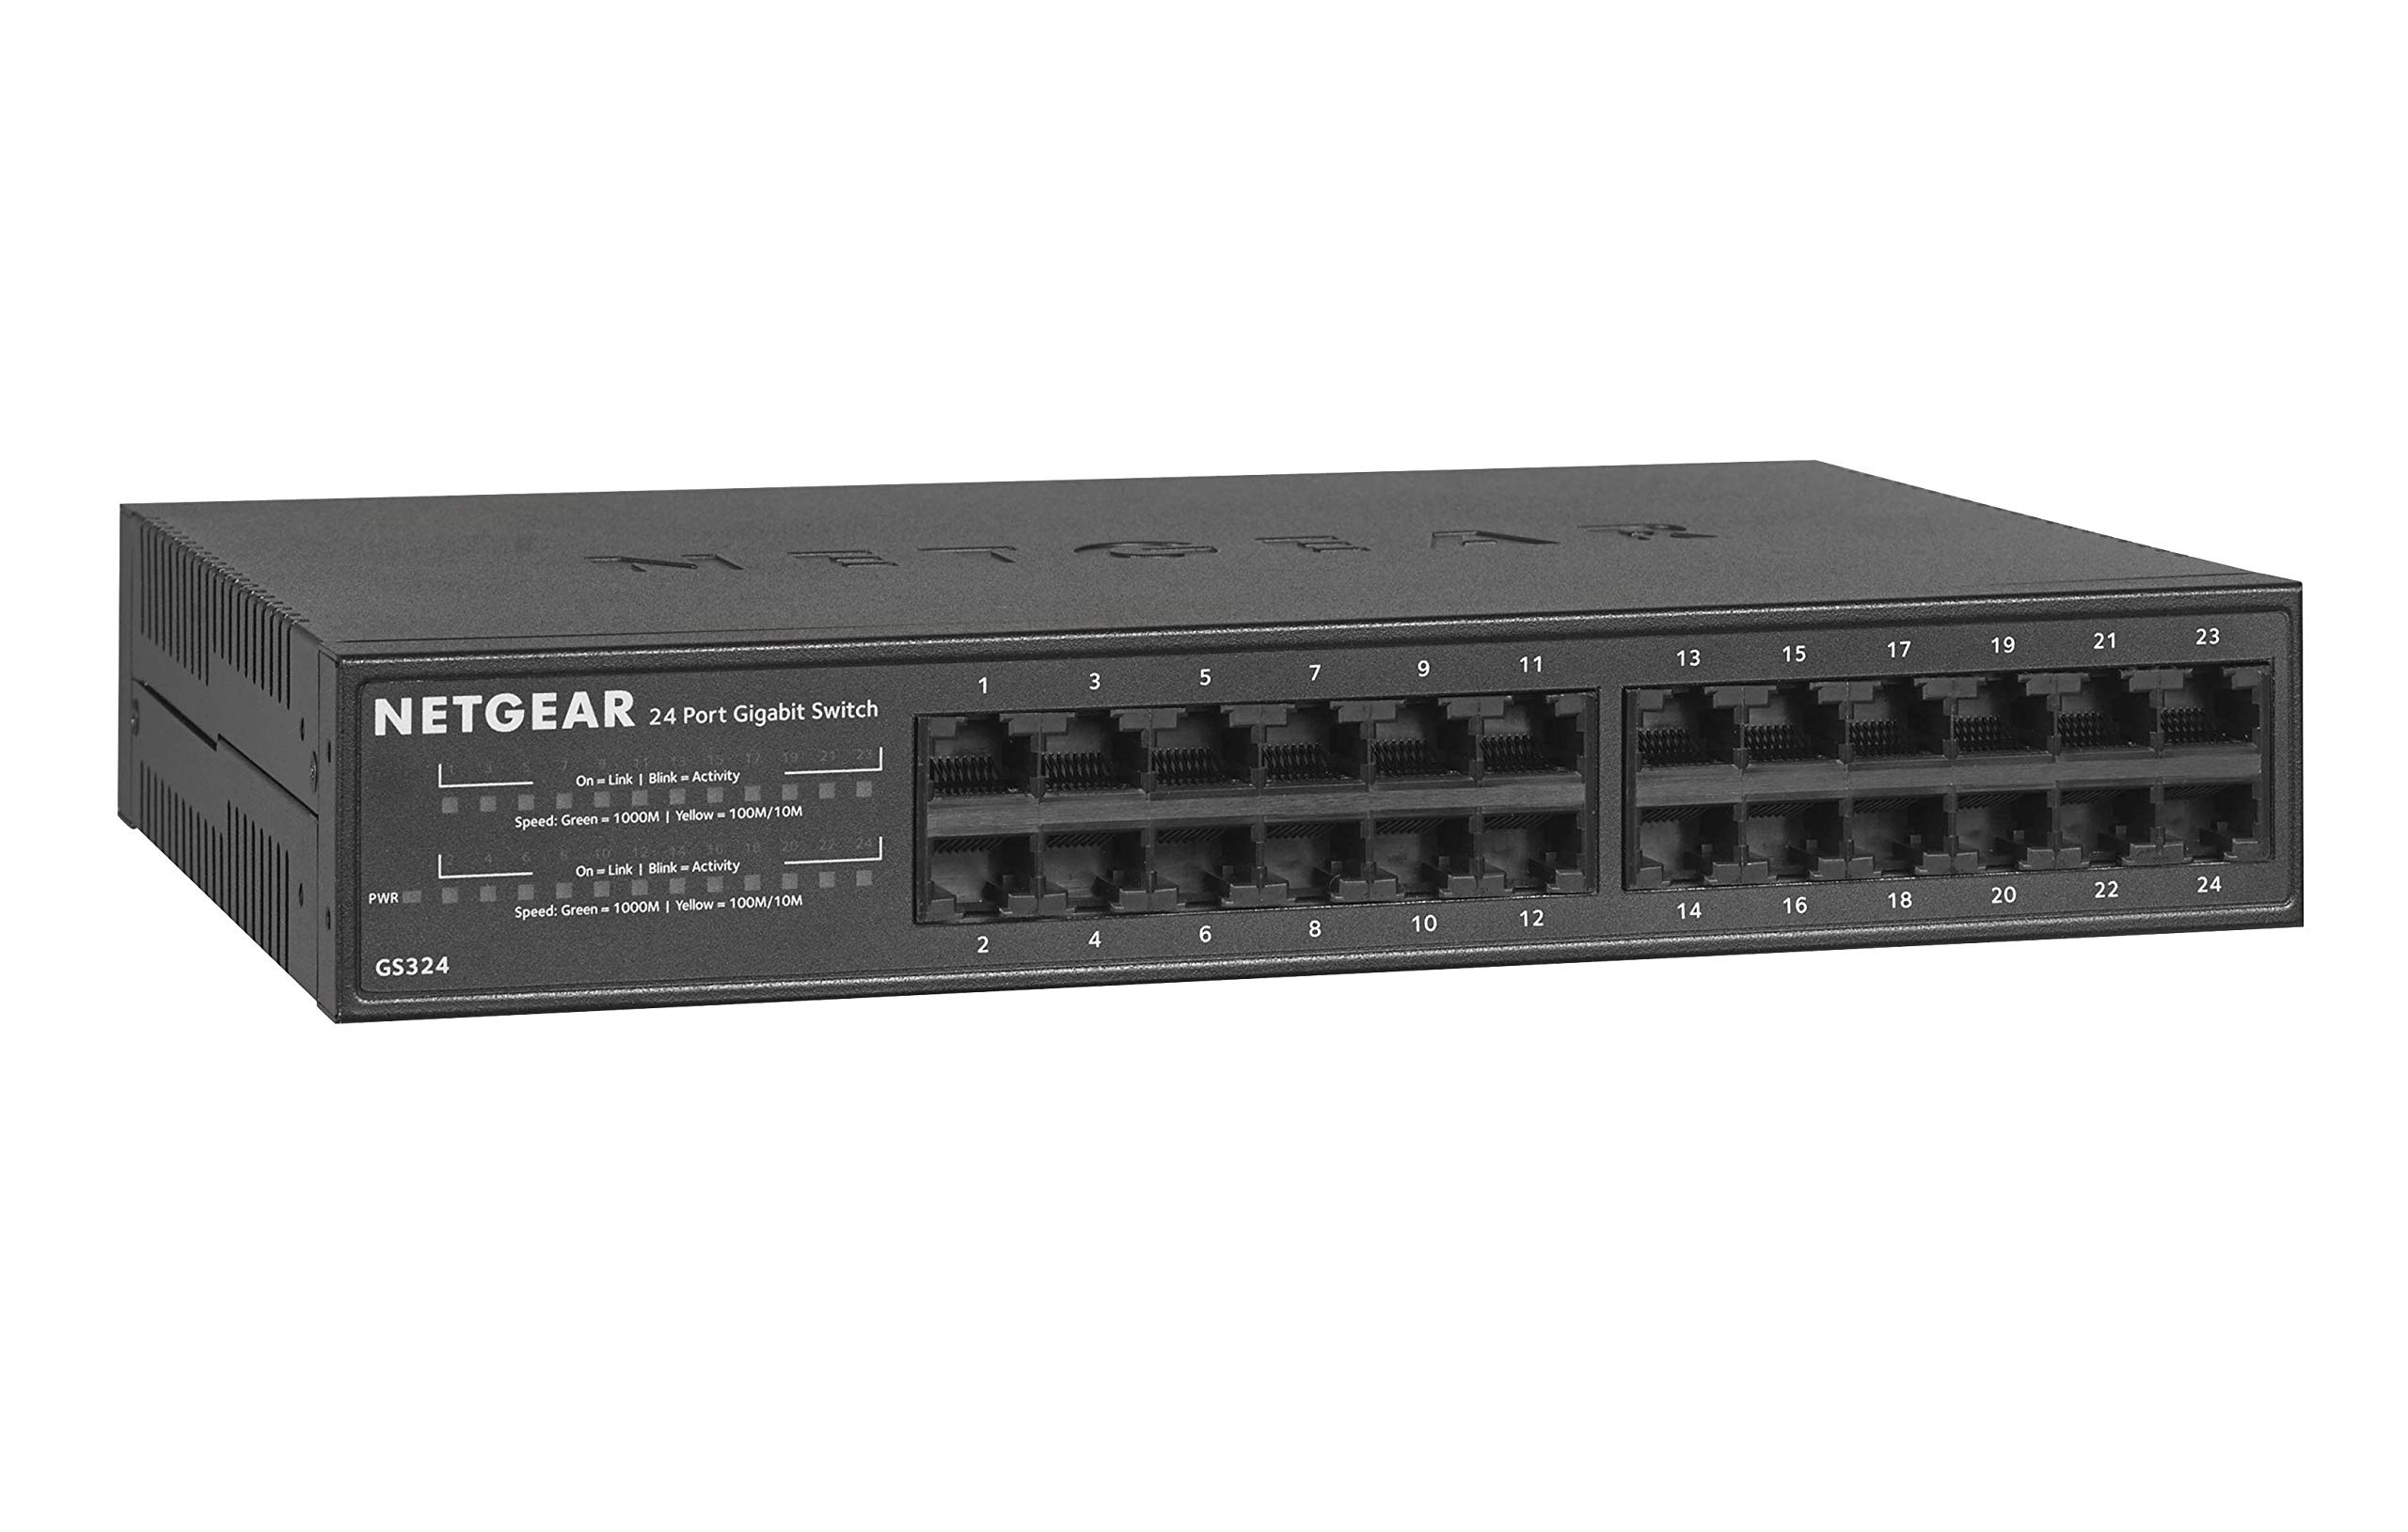 NETGEAR 24-Port Gigabit Ethernet Unmanaged Switch (GS324) - Desktop/Rackmount, Fanless Housing for Quiet Operation by NETGEAR